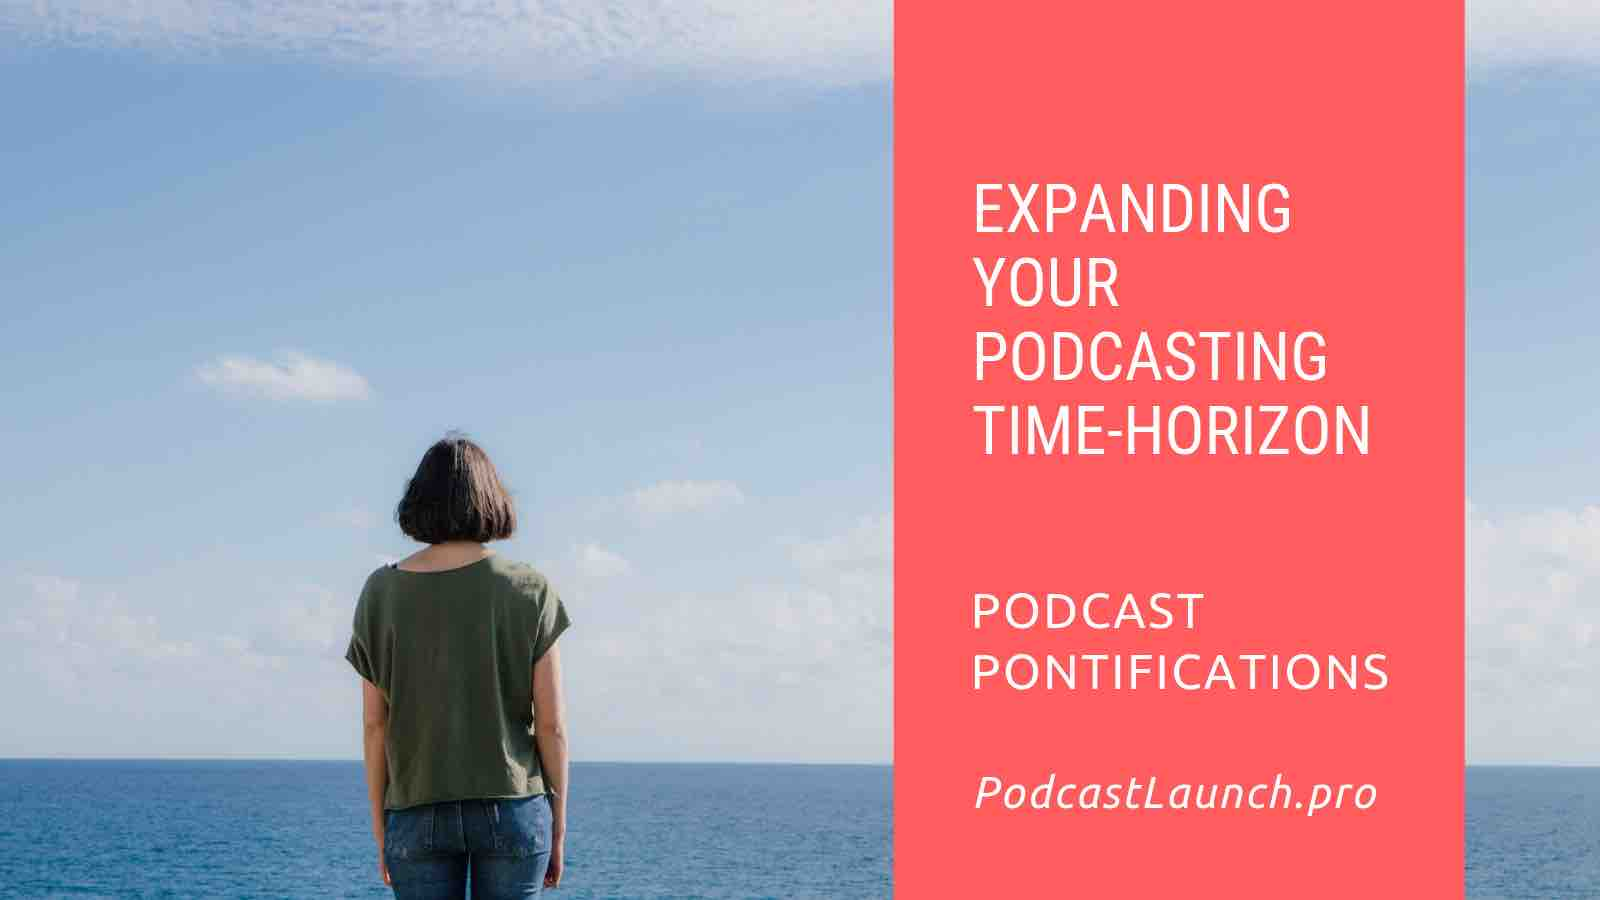 Expanding Your Podcasting Time-Horizon